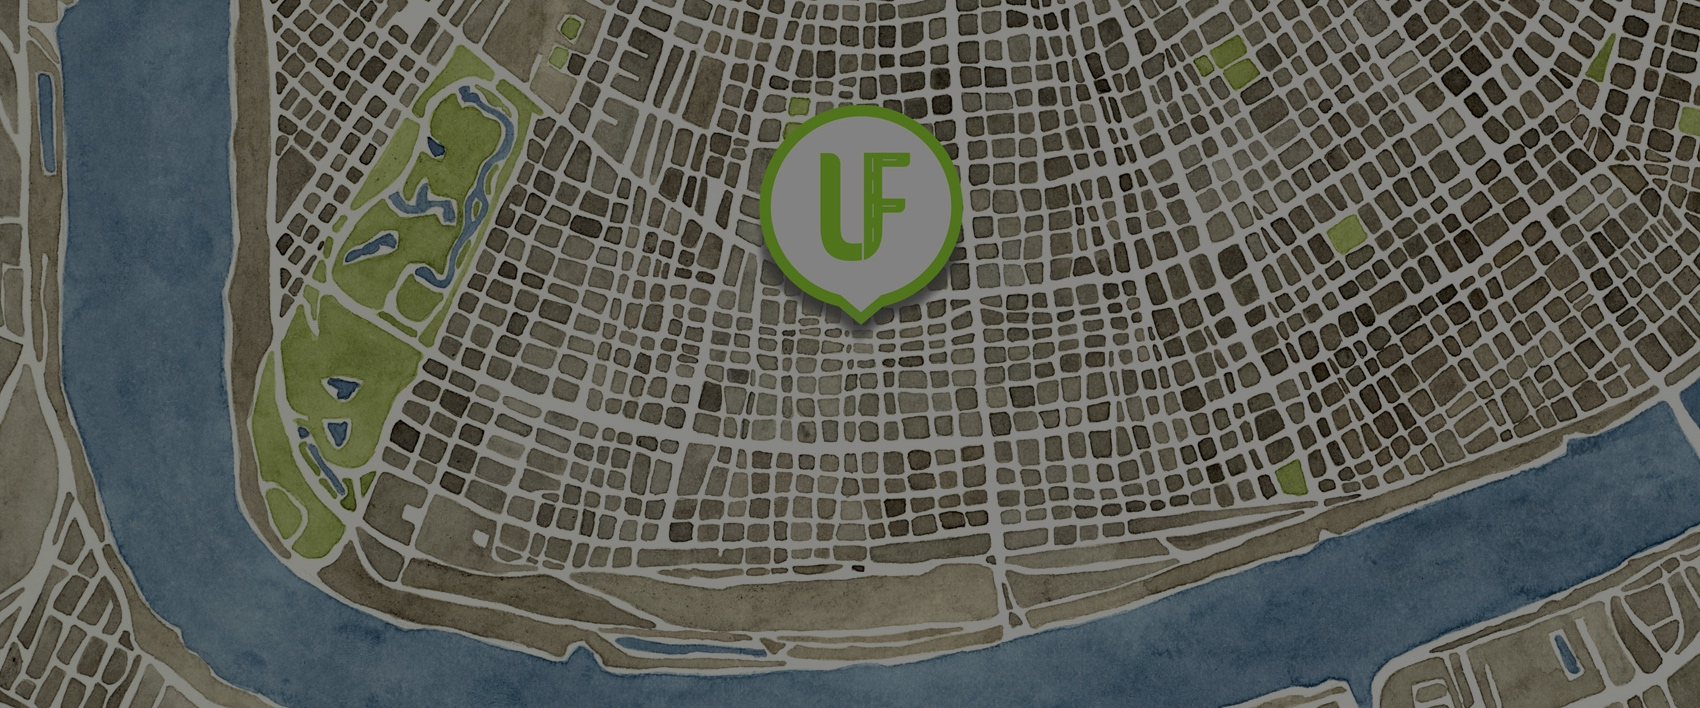 New Orleans Map UF Logo Cropped